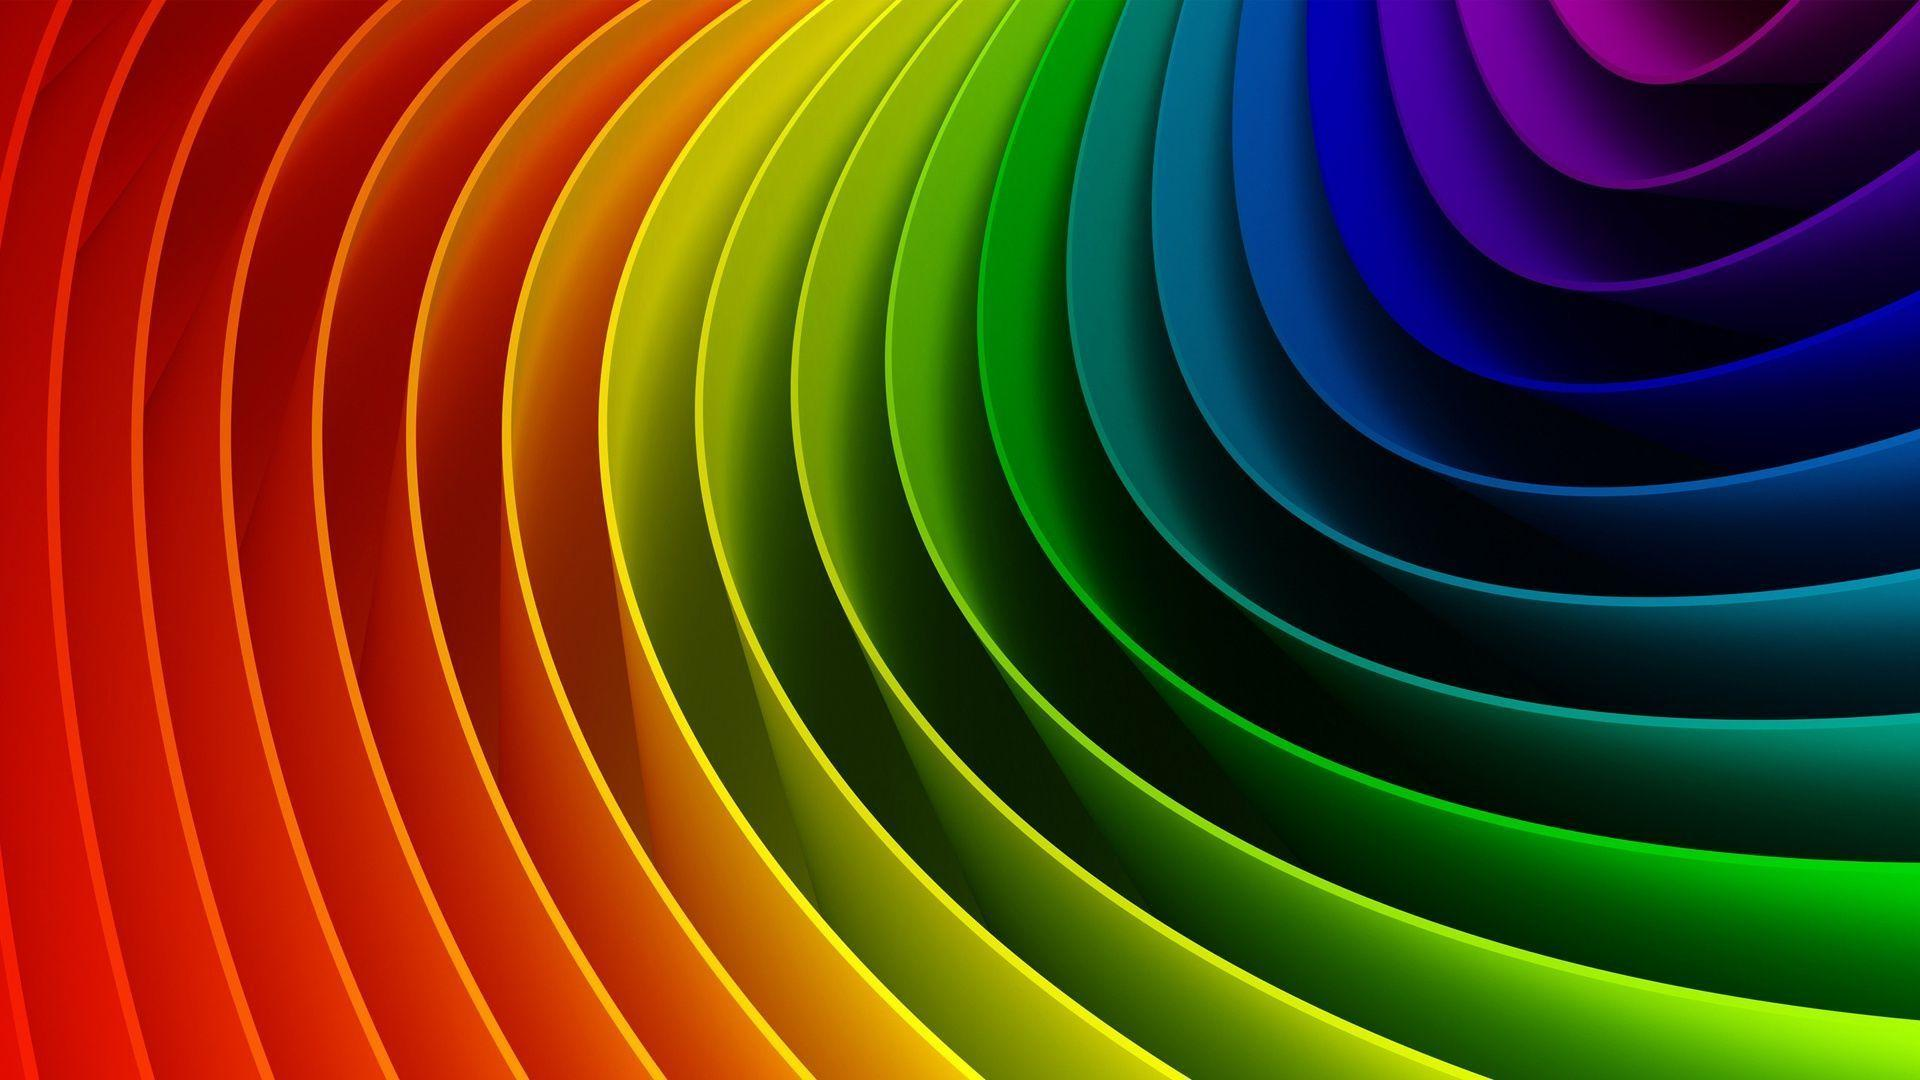 Awesome Colorful Wallpapers 1920x1080